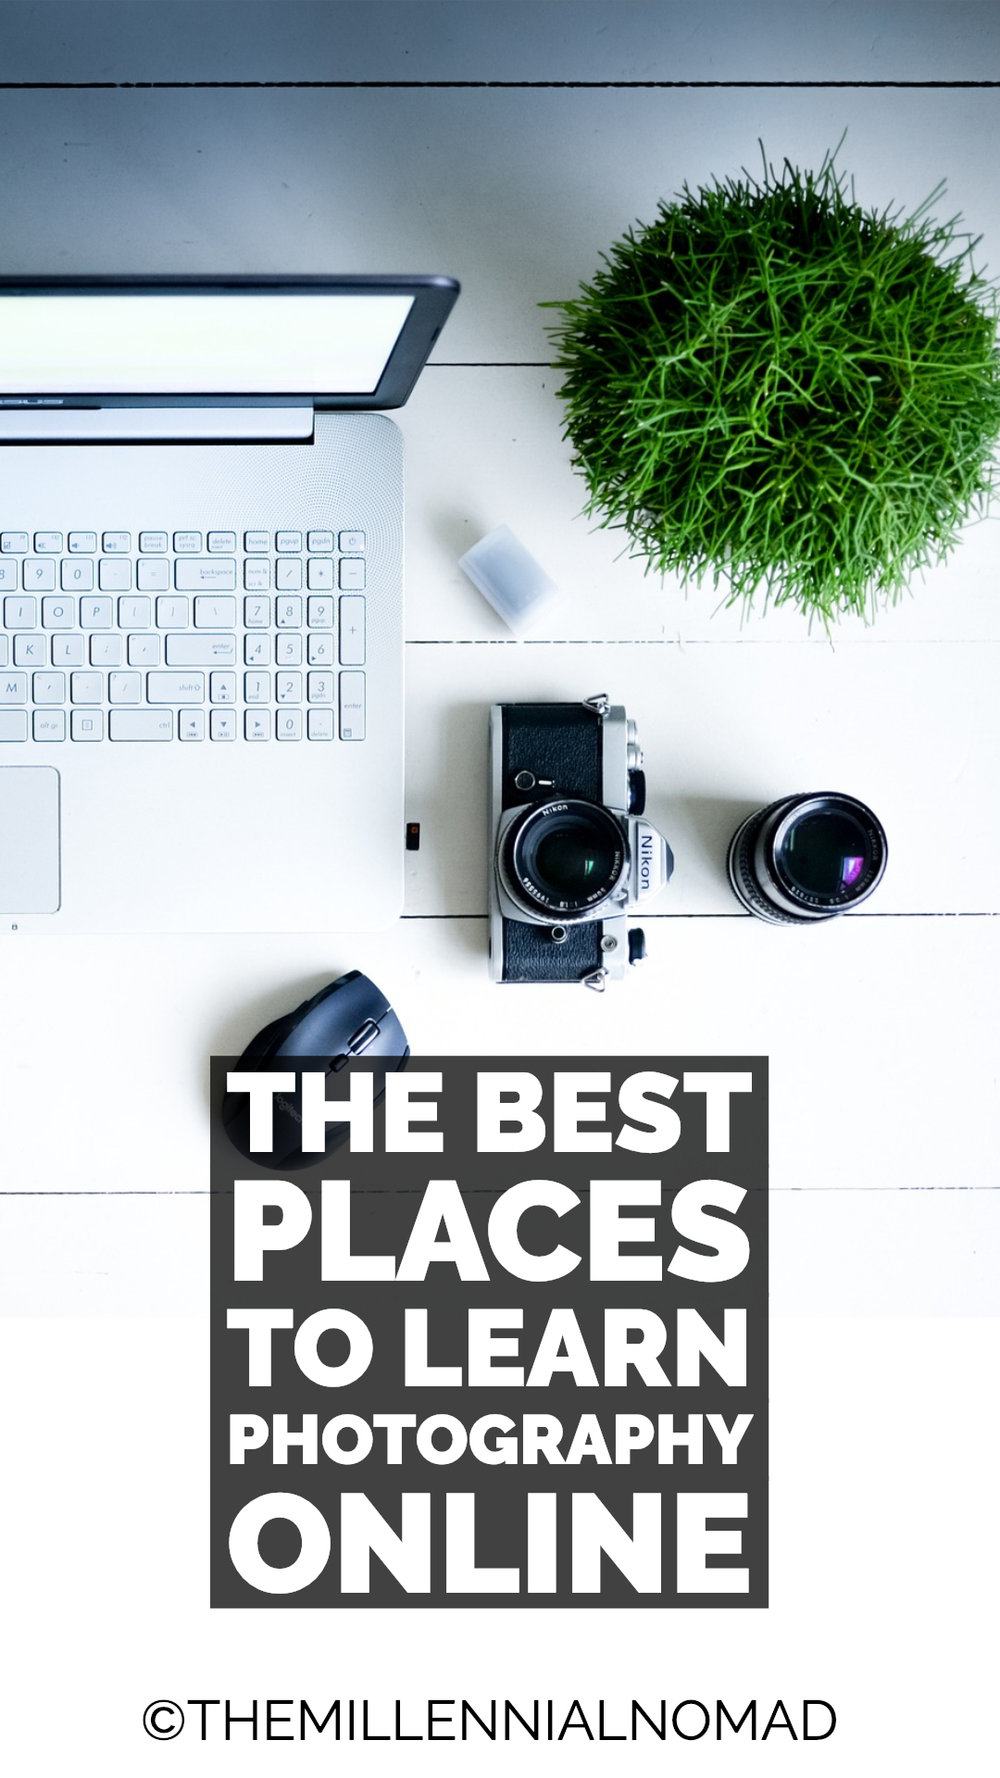 Learning photography by yourself can be complicated. The good news is that there are many resources online that can help you become better at photography very easily. Check out the best places to learn photography online.